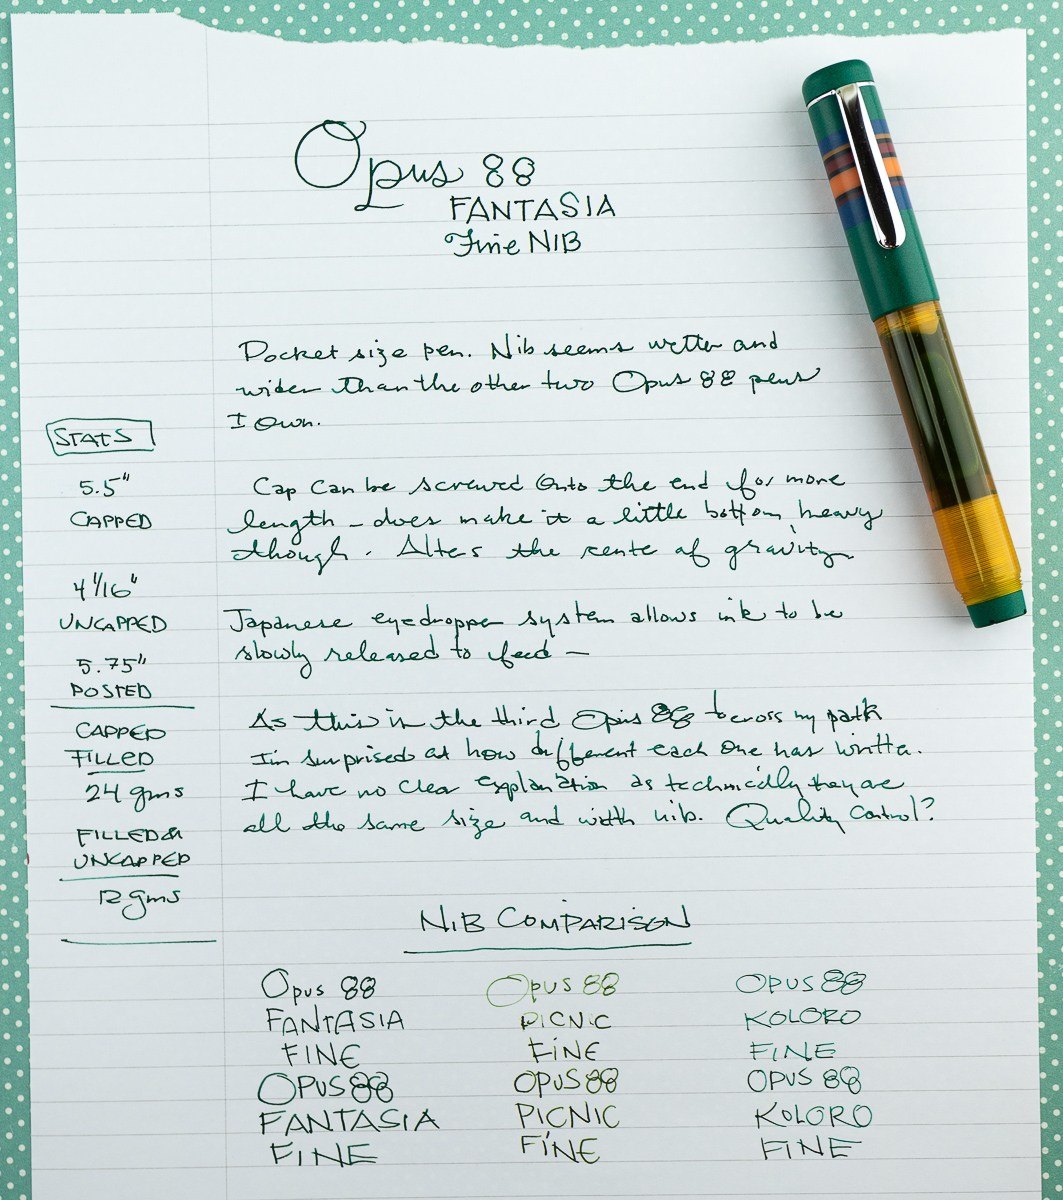 Opus 88 Fantasia Green Orange Fountain Pen Writing Sample